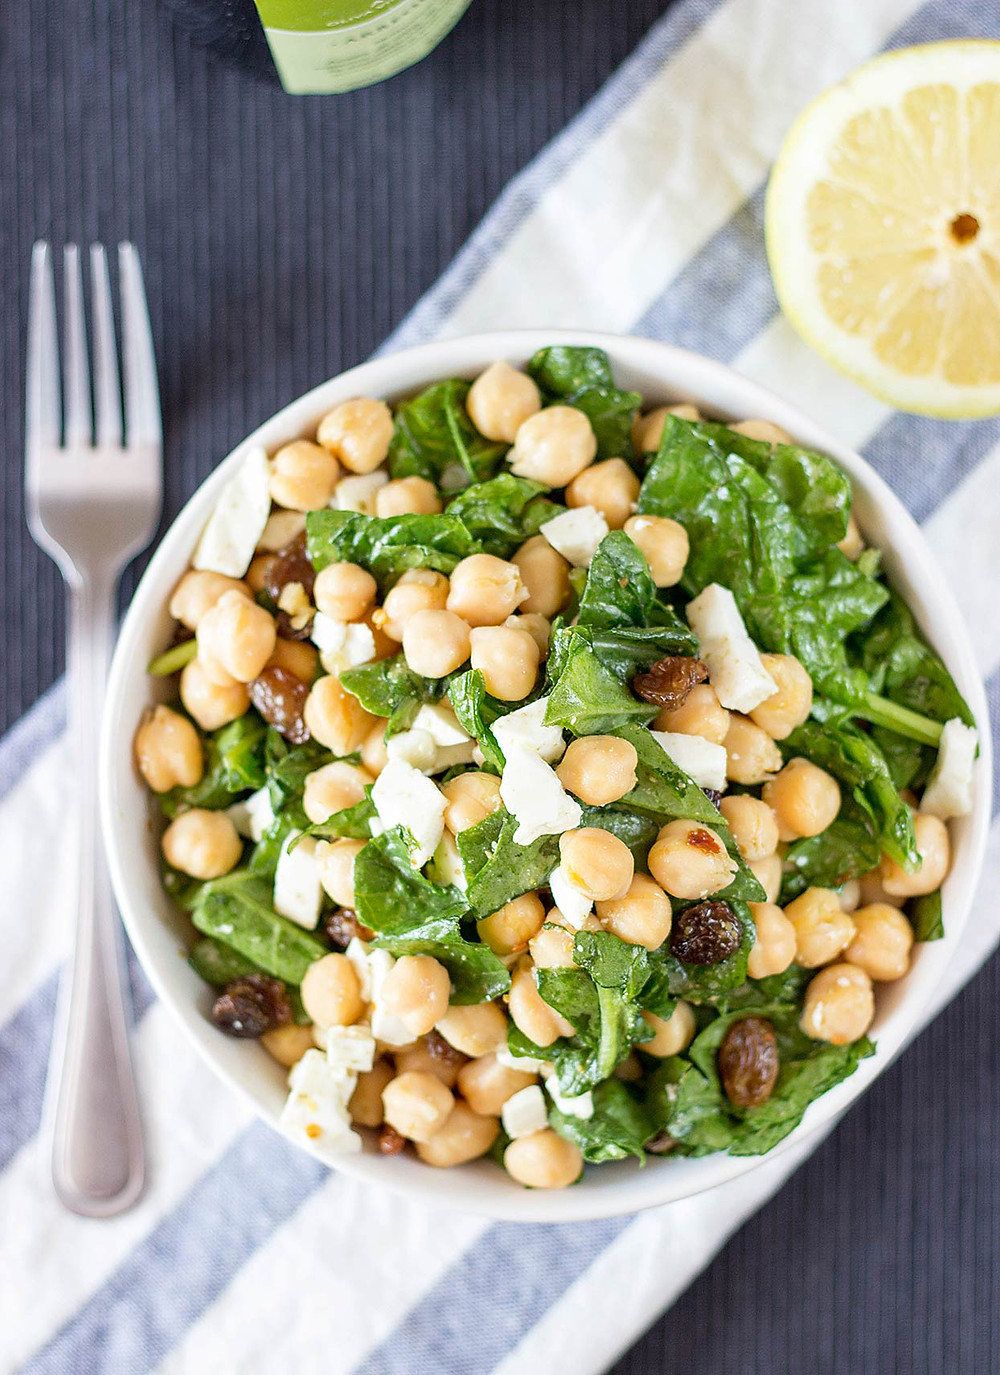 chickpea spinach salad is full of healthy ingredients and promotes a calm and clear mind